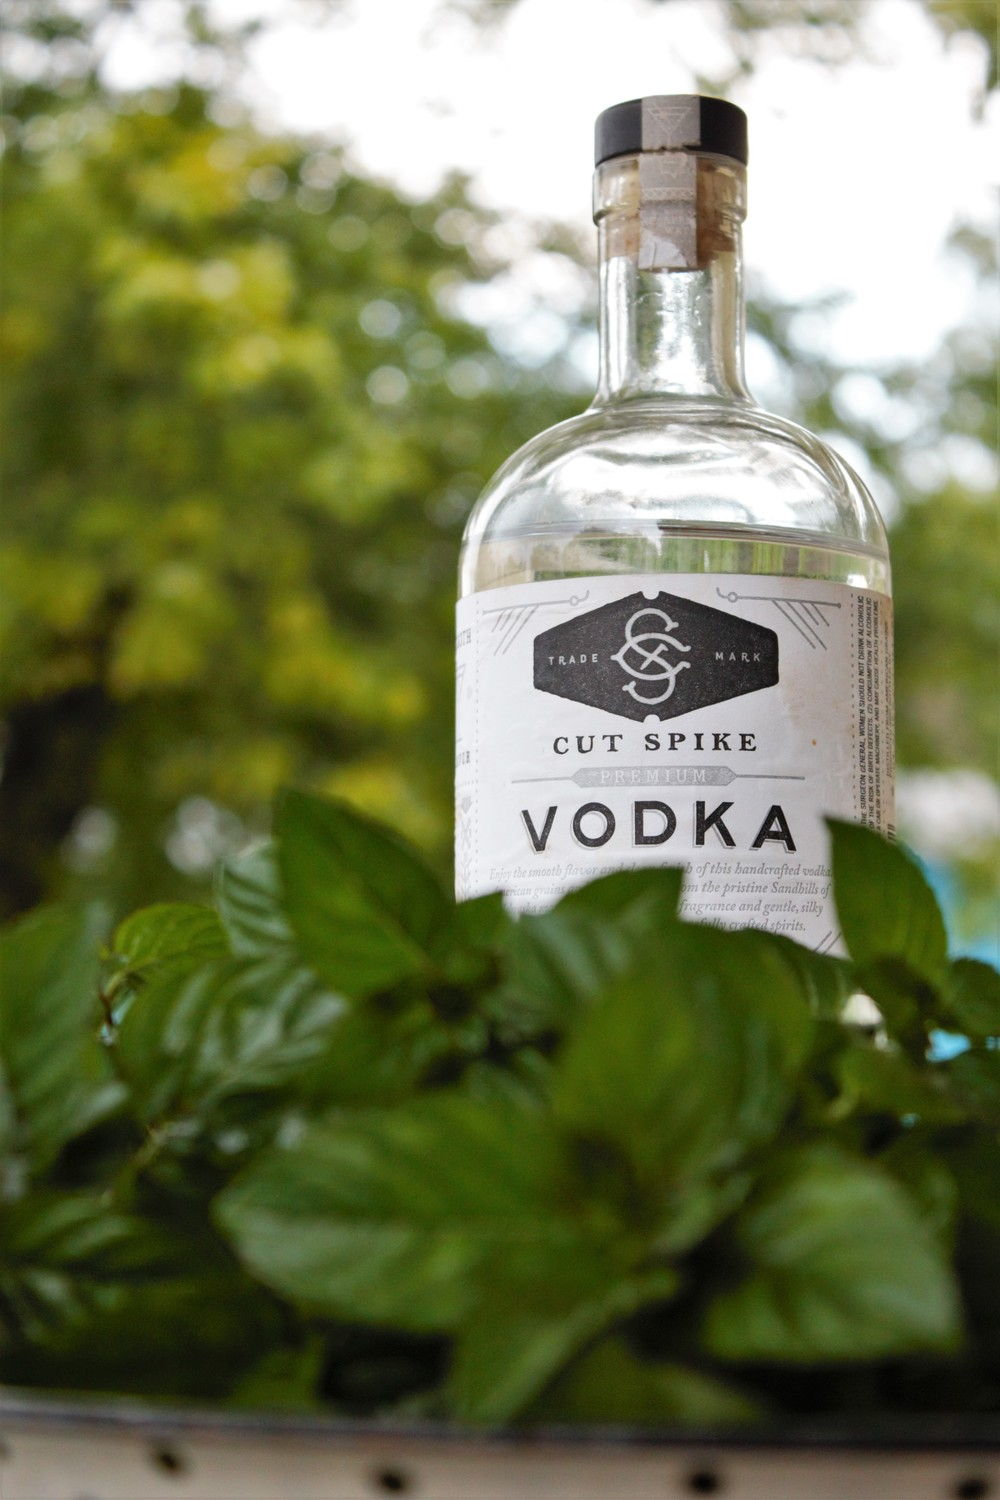 80 proof vodka from a local maker helps to extract the oils from the mint and preserve the extract from spoiling. We use Cut Spike Vodka, which is distilled in La Vista, Nebraska.